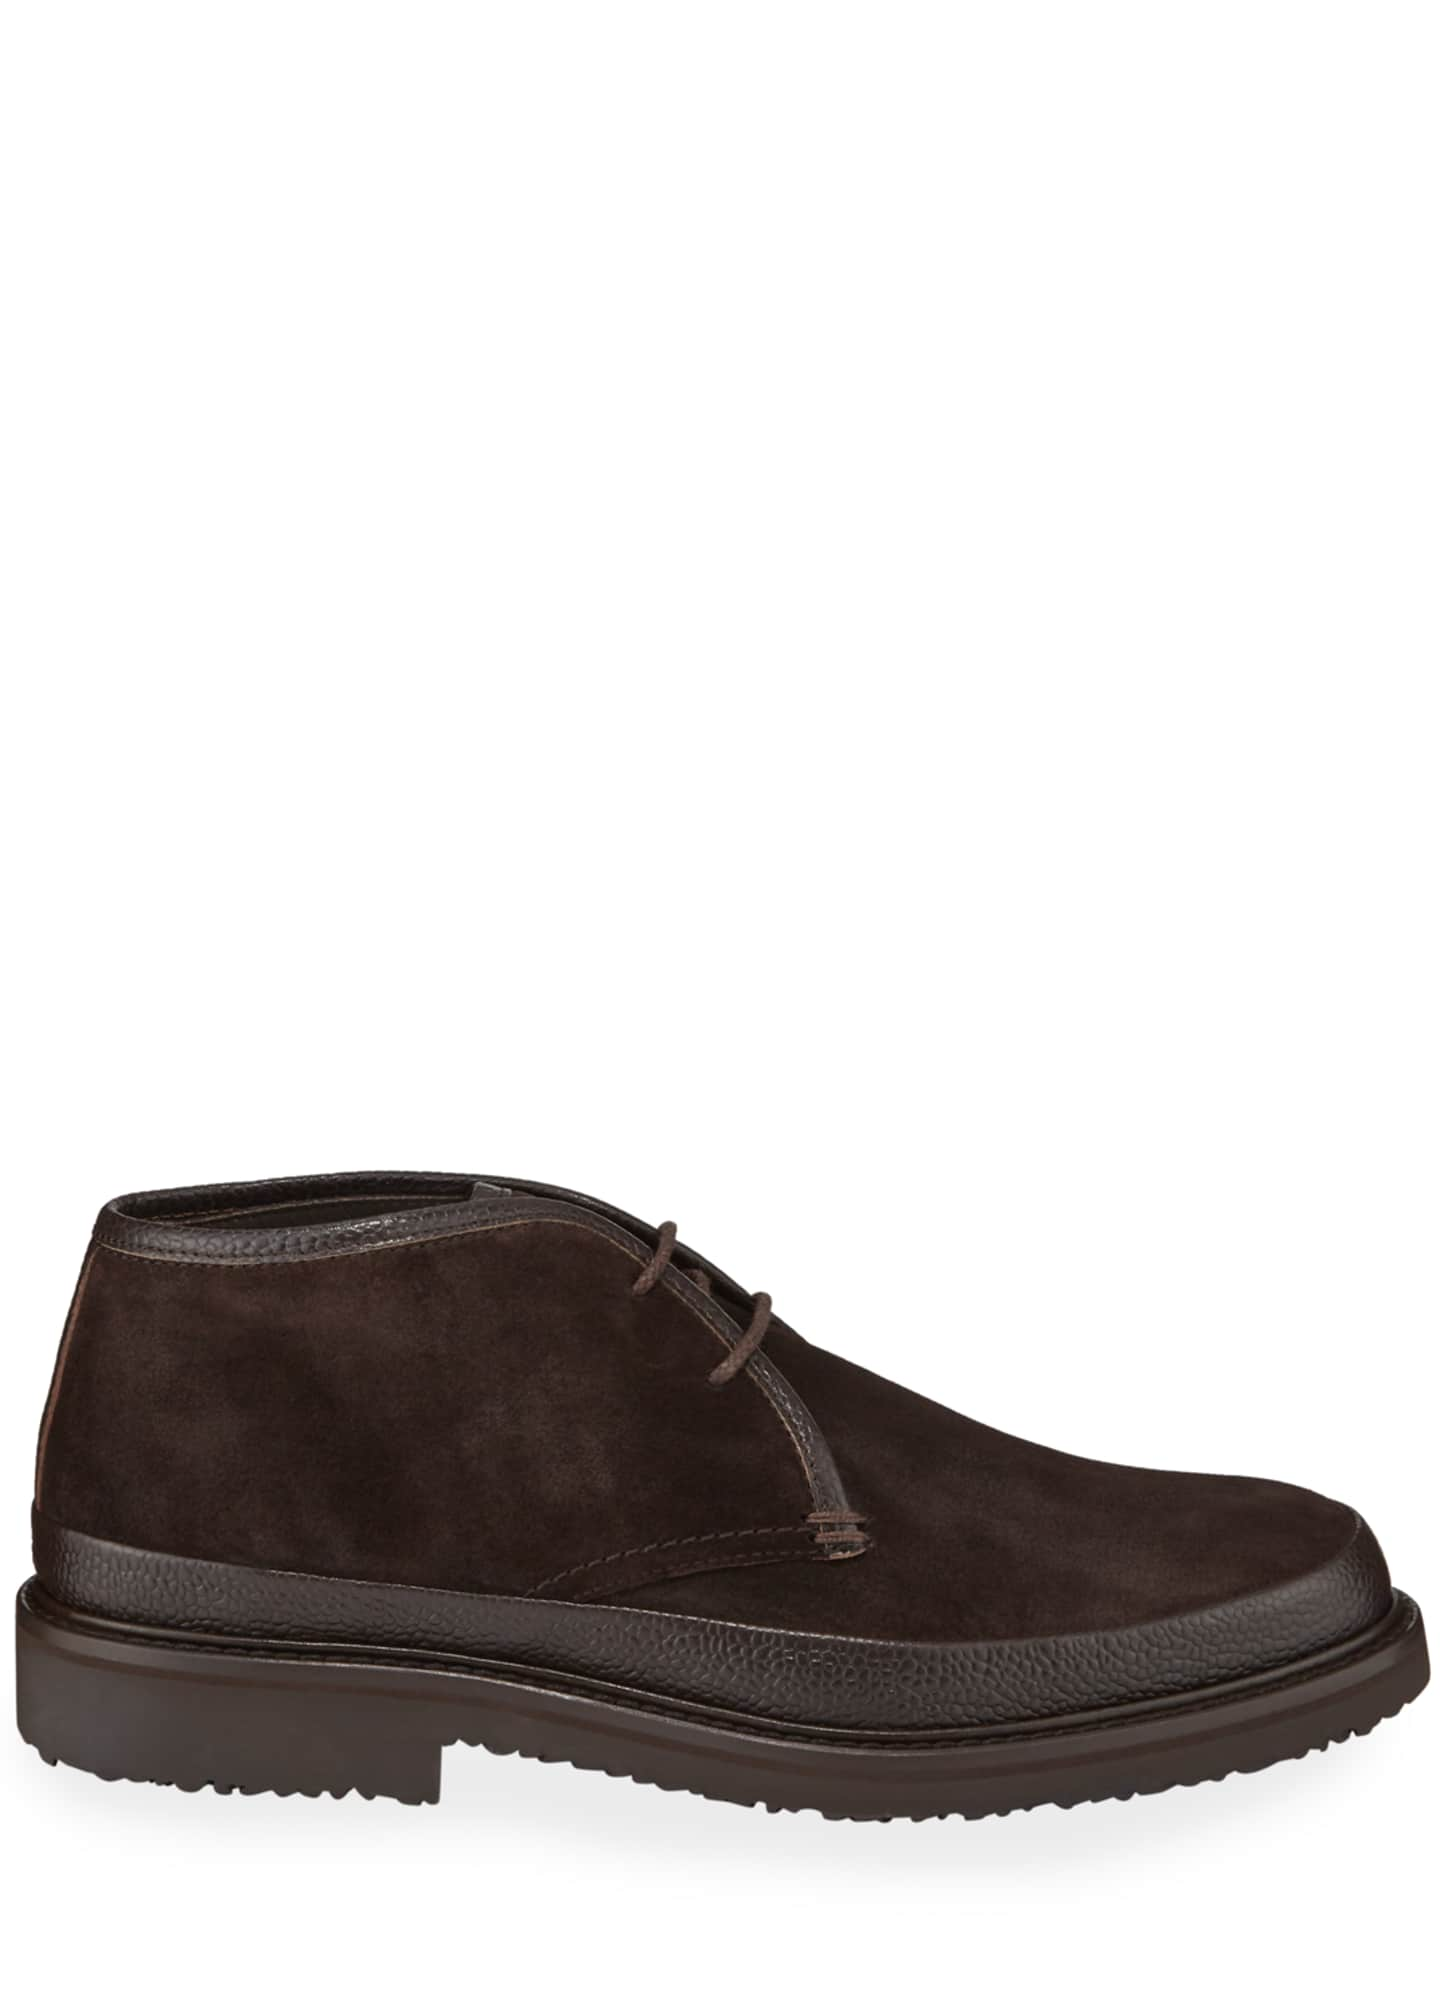 Image 3 of 3: Men's Trivero Suede Chukka Boots with Mud Guard